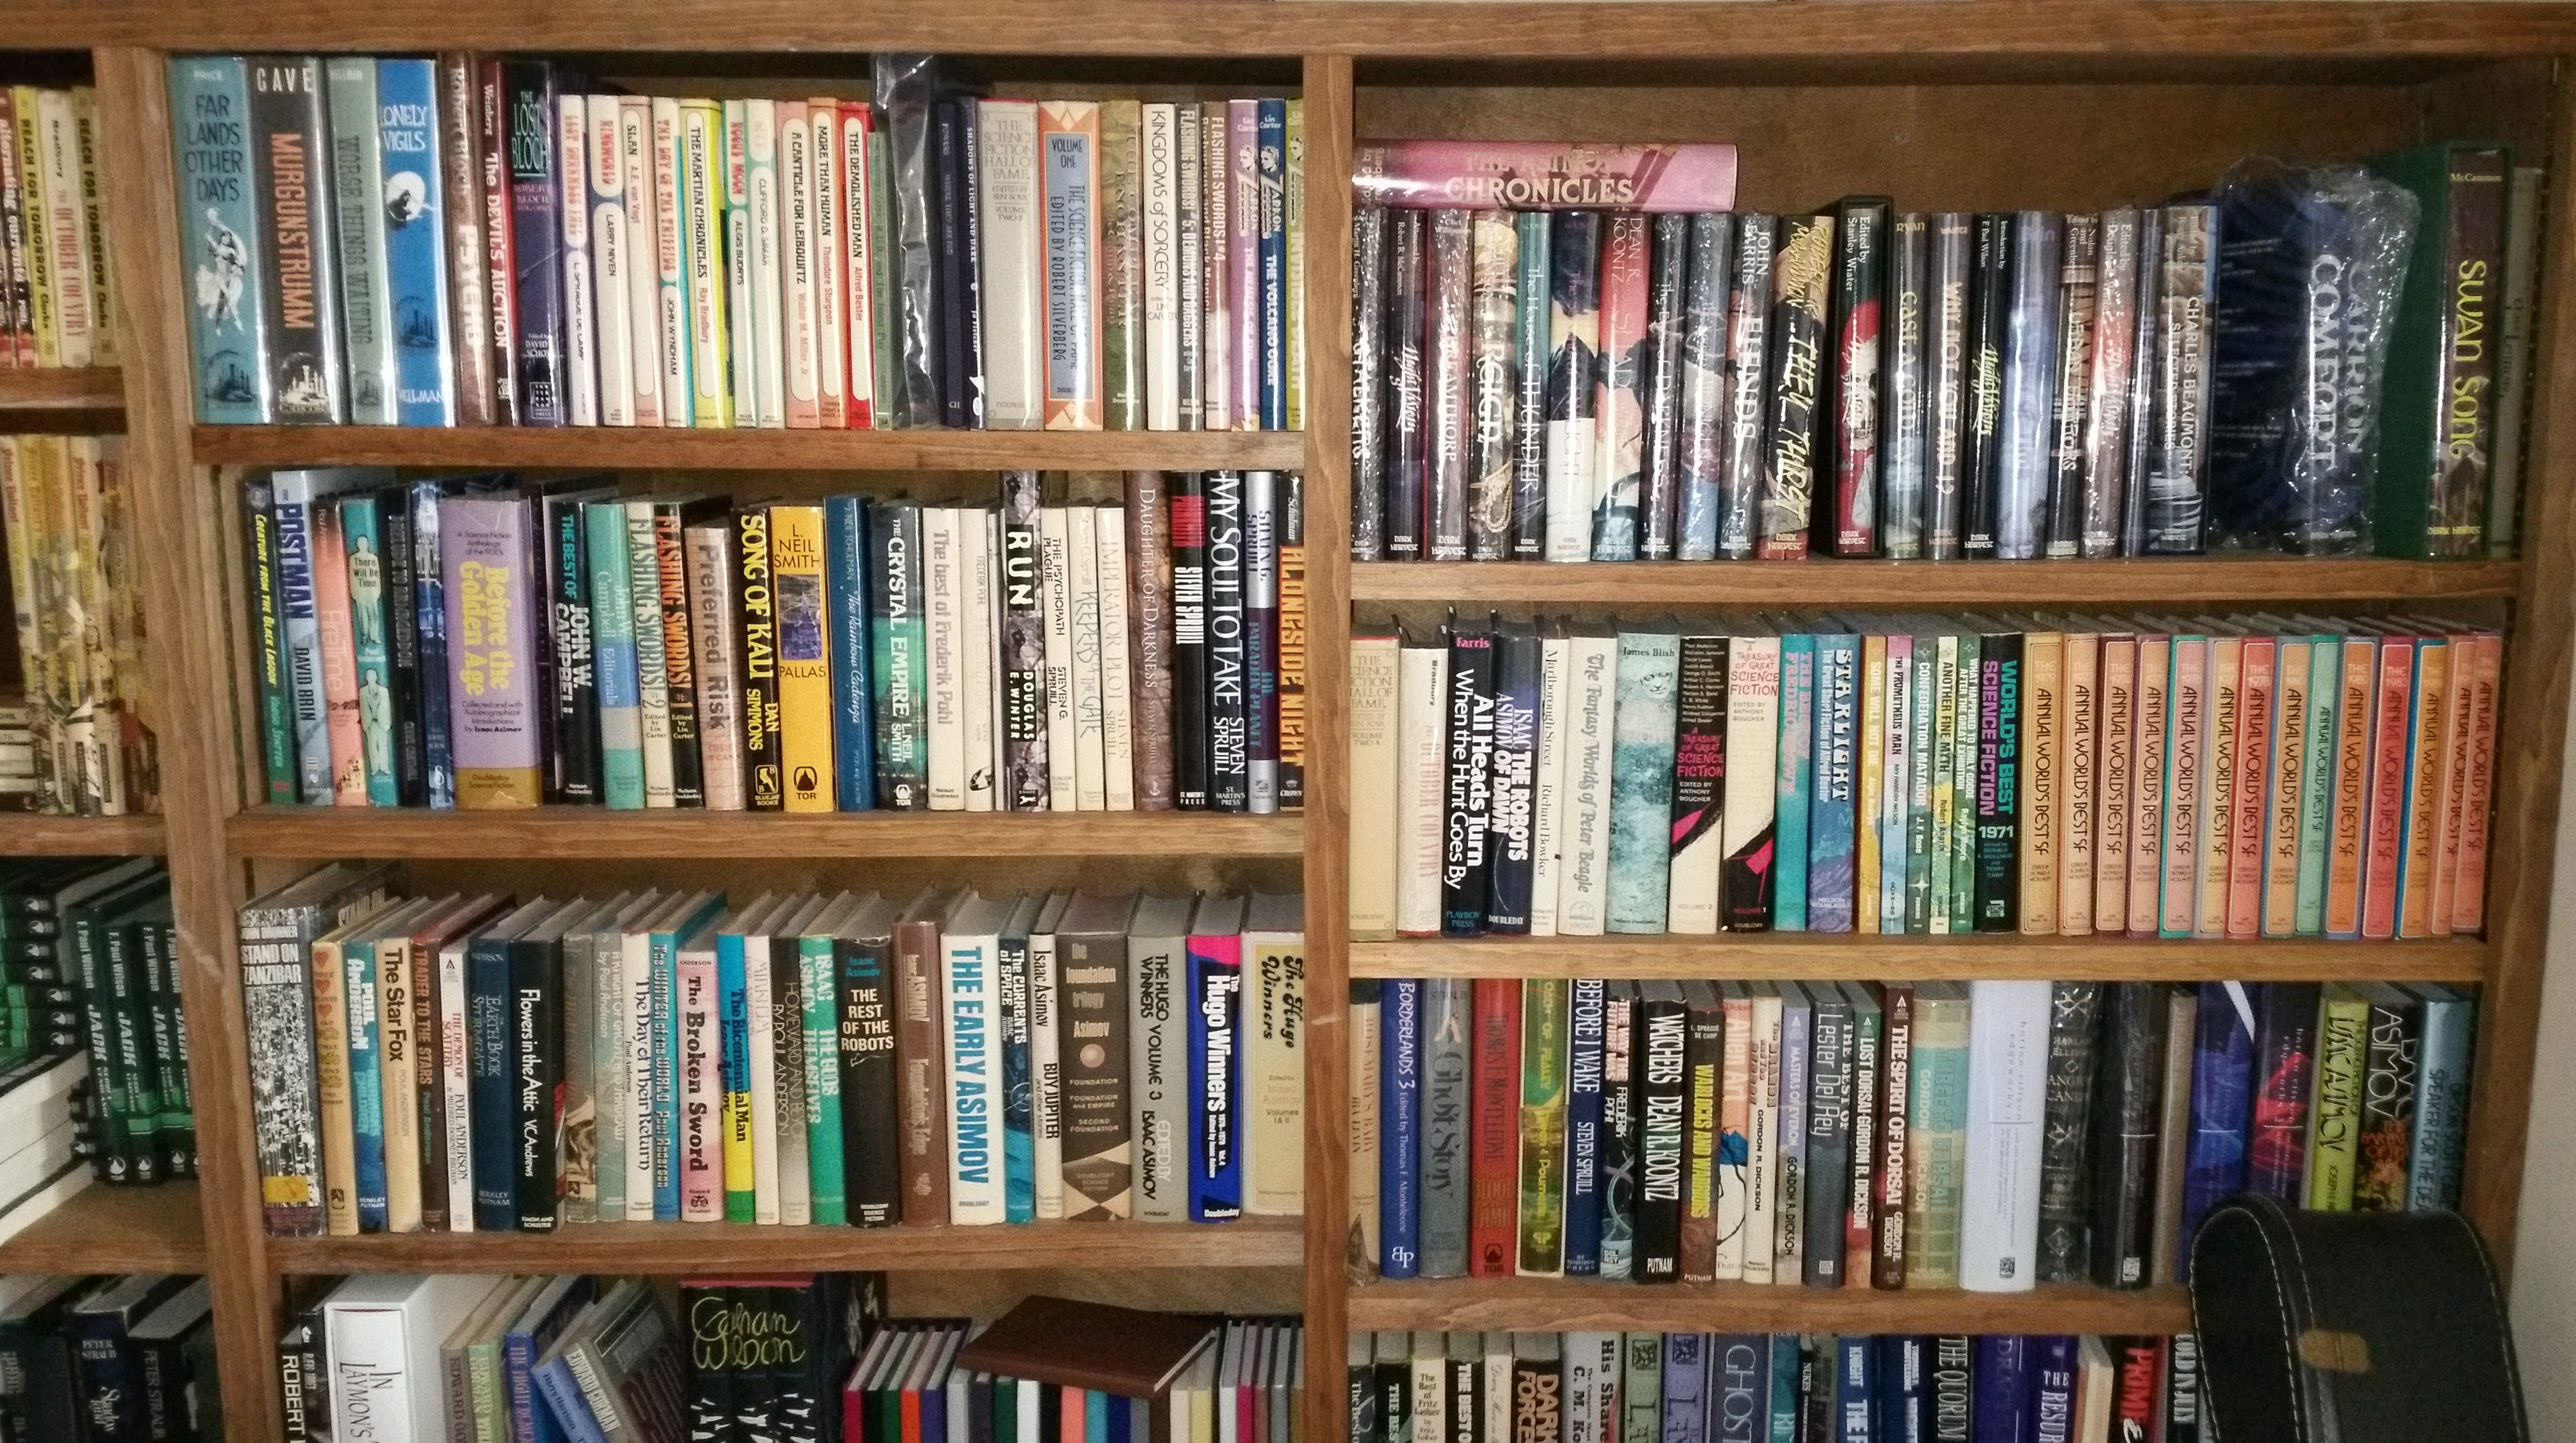 American author F. Paul Wilson uploaded an impressive mutli-shelf  shelfie  through the Shelfie app.